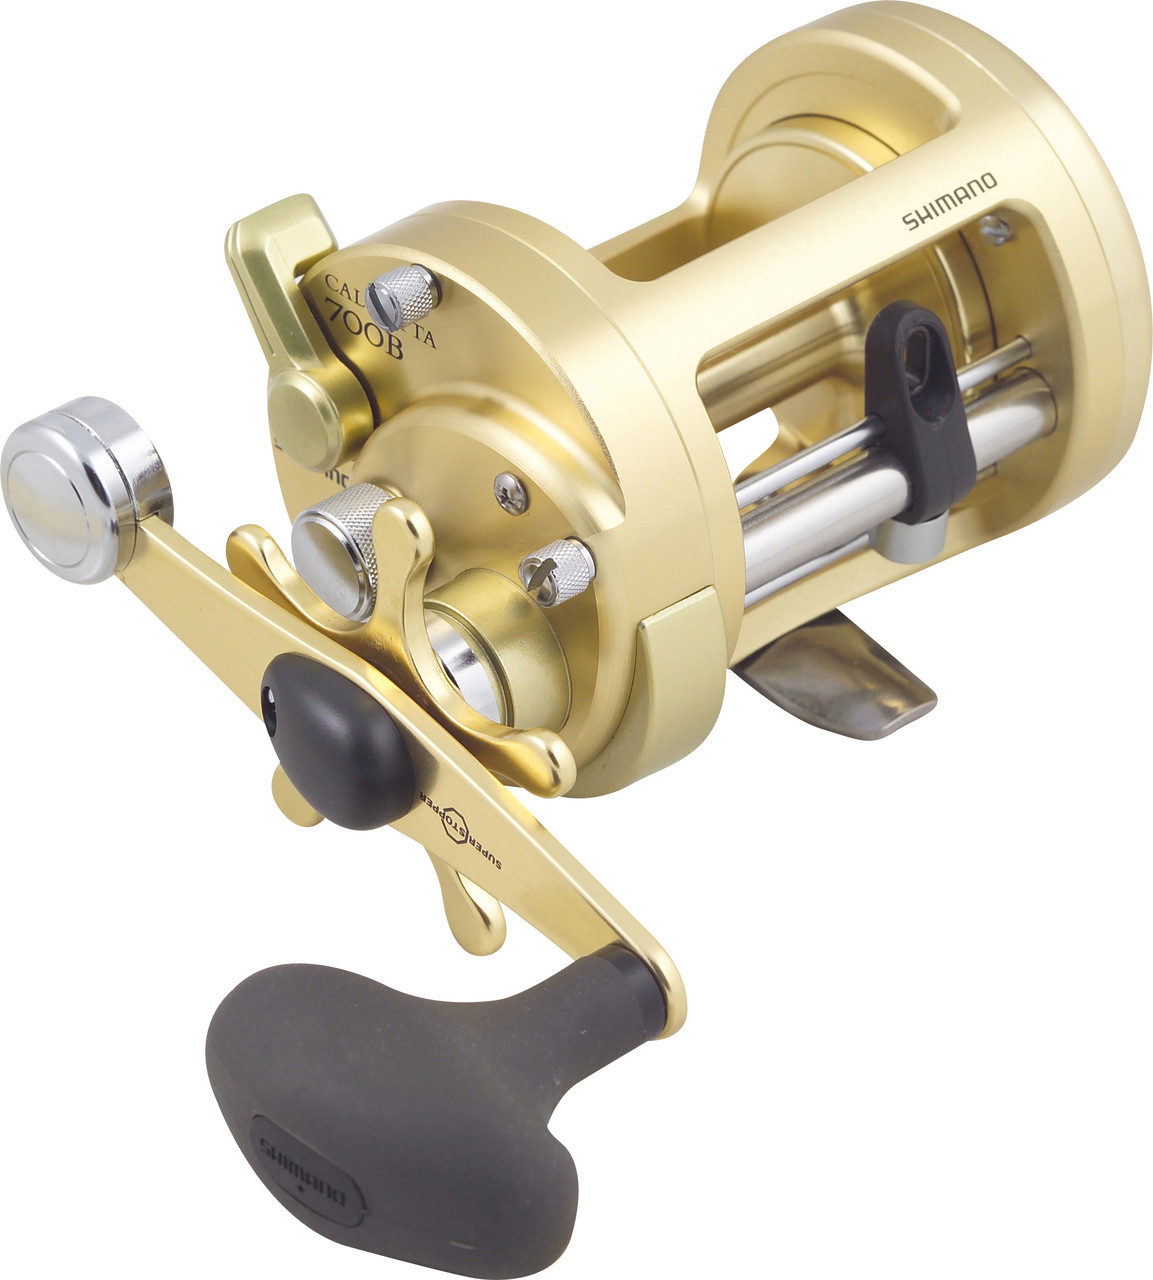 Shimano calcutta ct 700b baitcaster fishing reel fishing for Baitcasting fishing reel